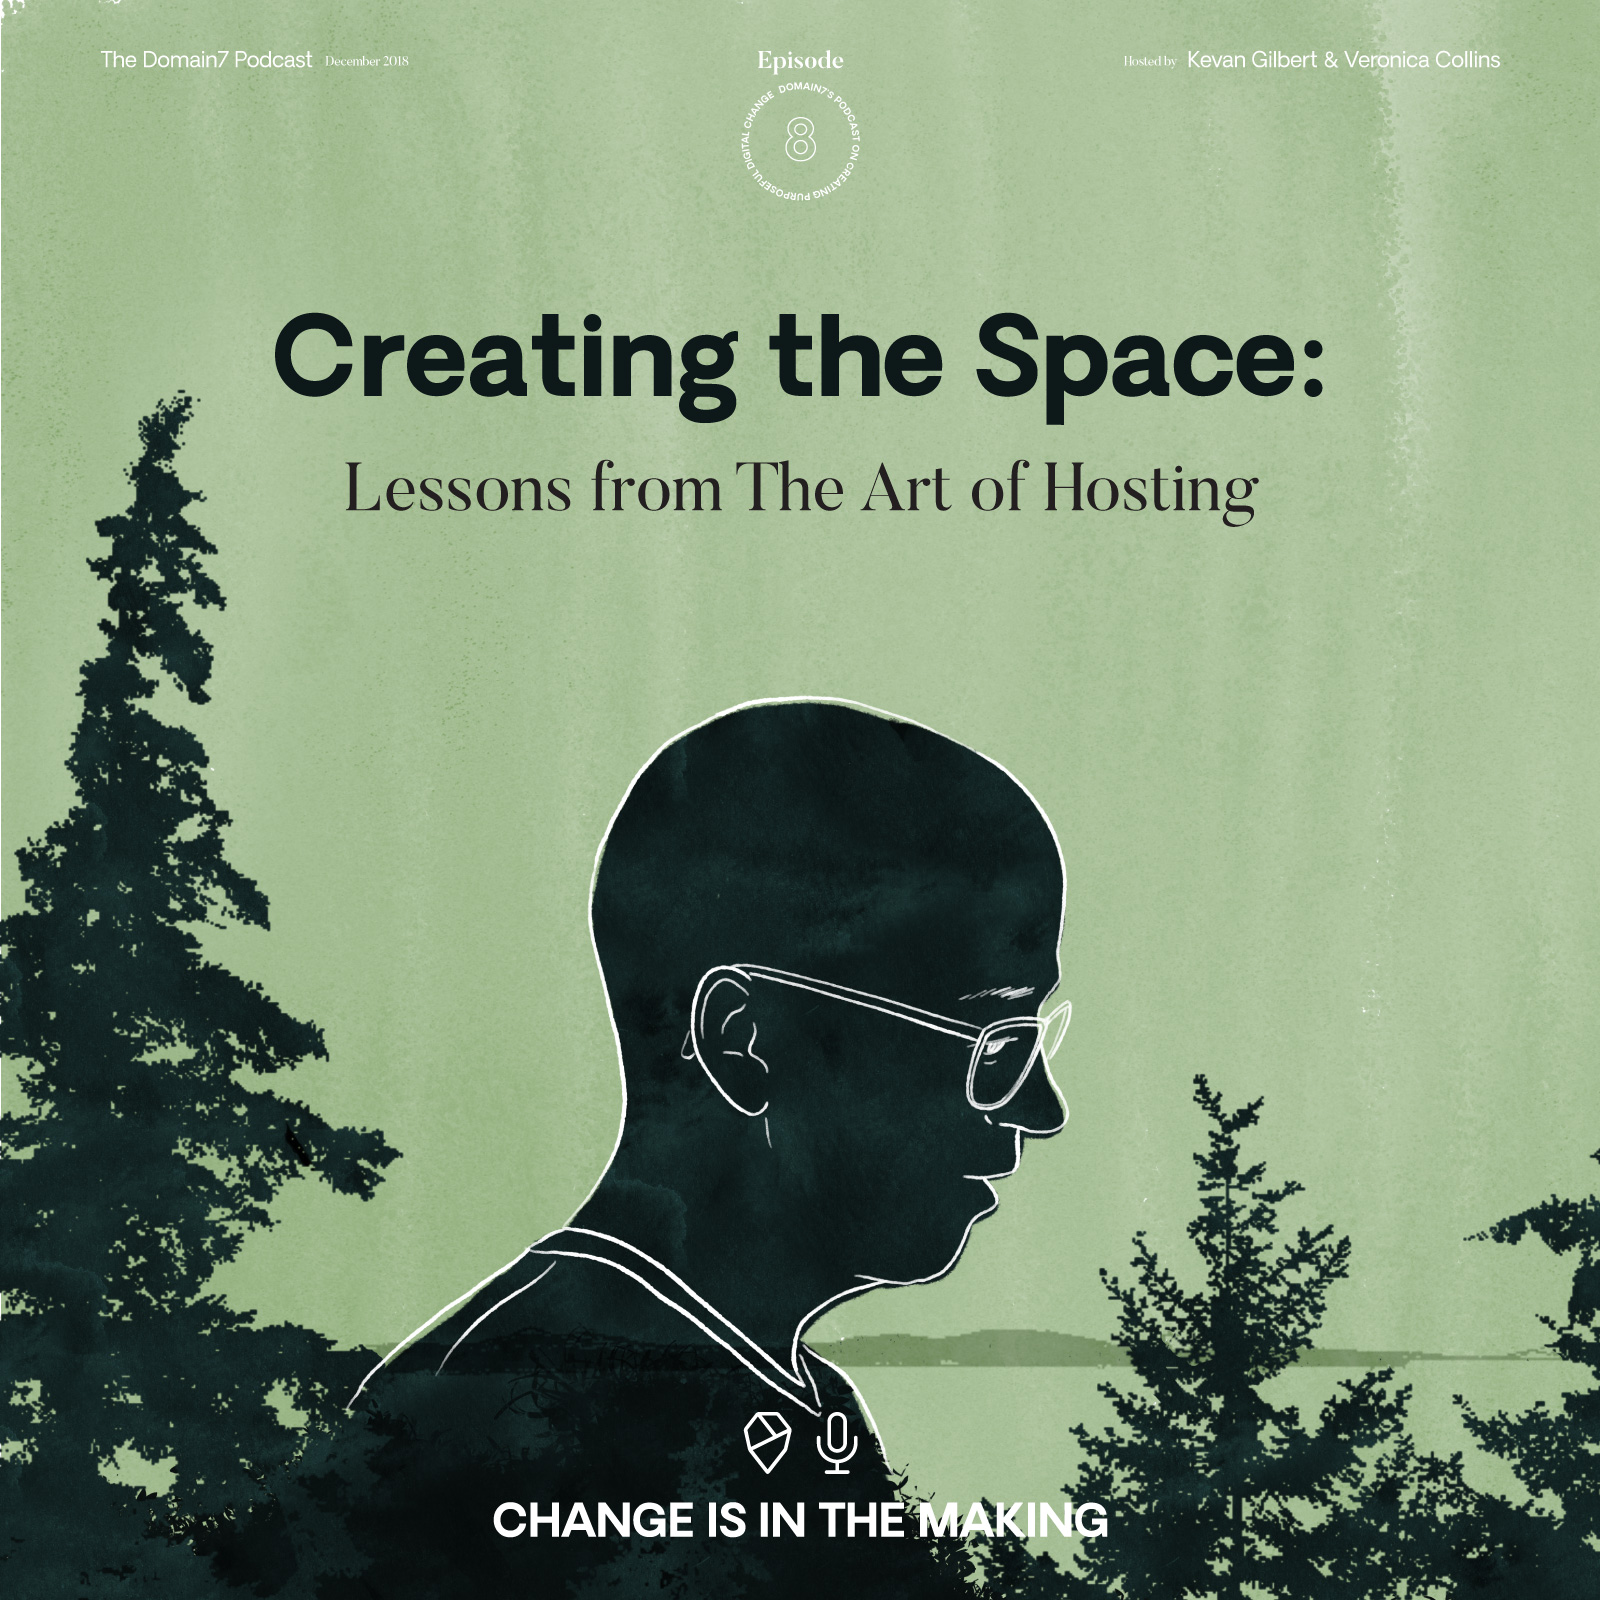 Creating the Space: Lessons from The Art of Hosting